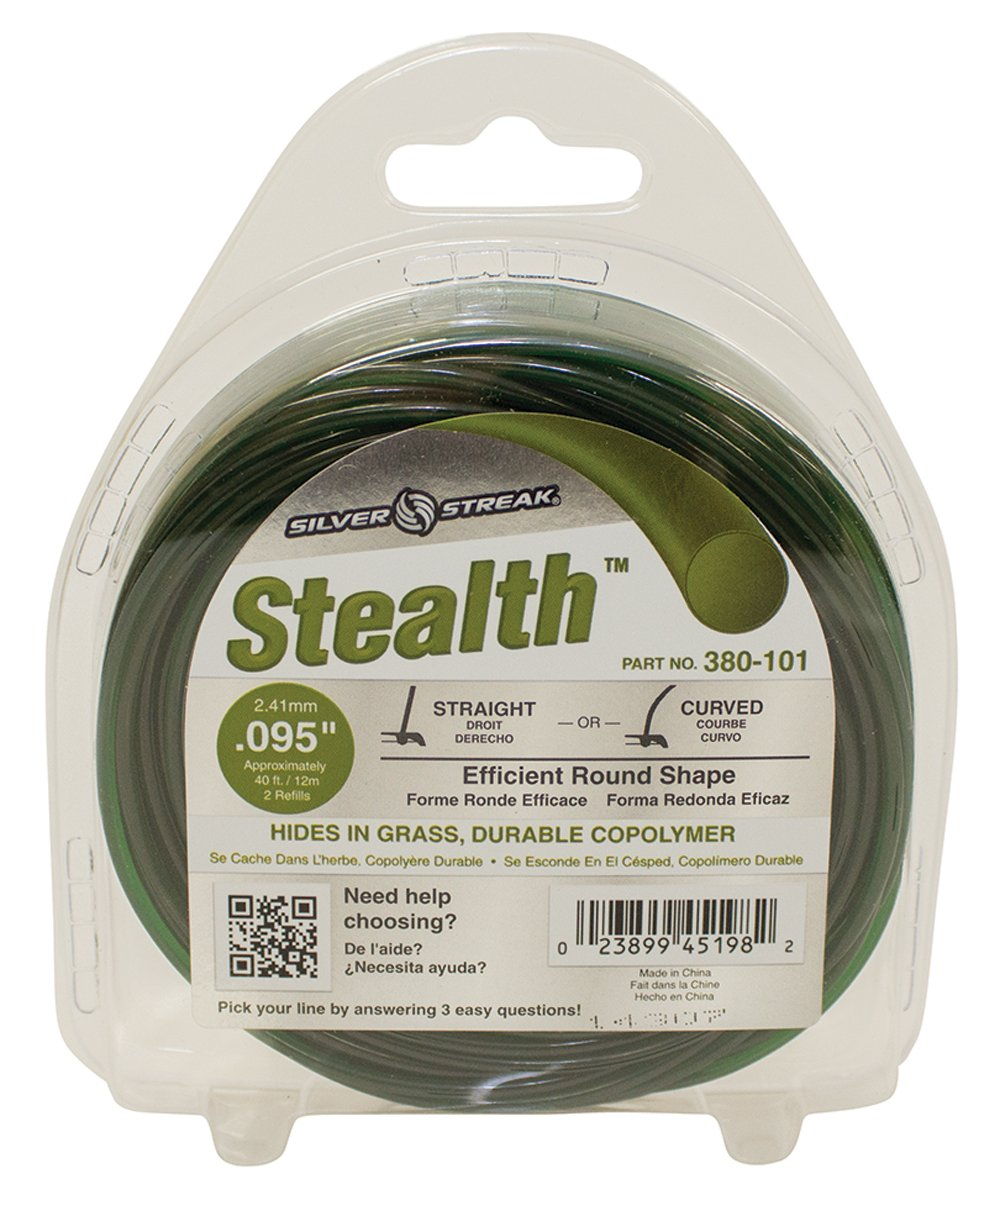 Stens 380-101 Stealth Trimmer Line by Stens (Image #1)